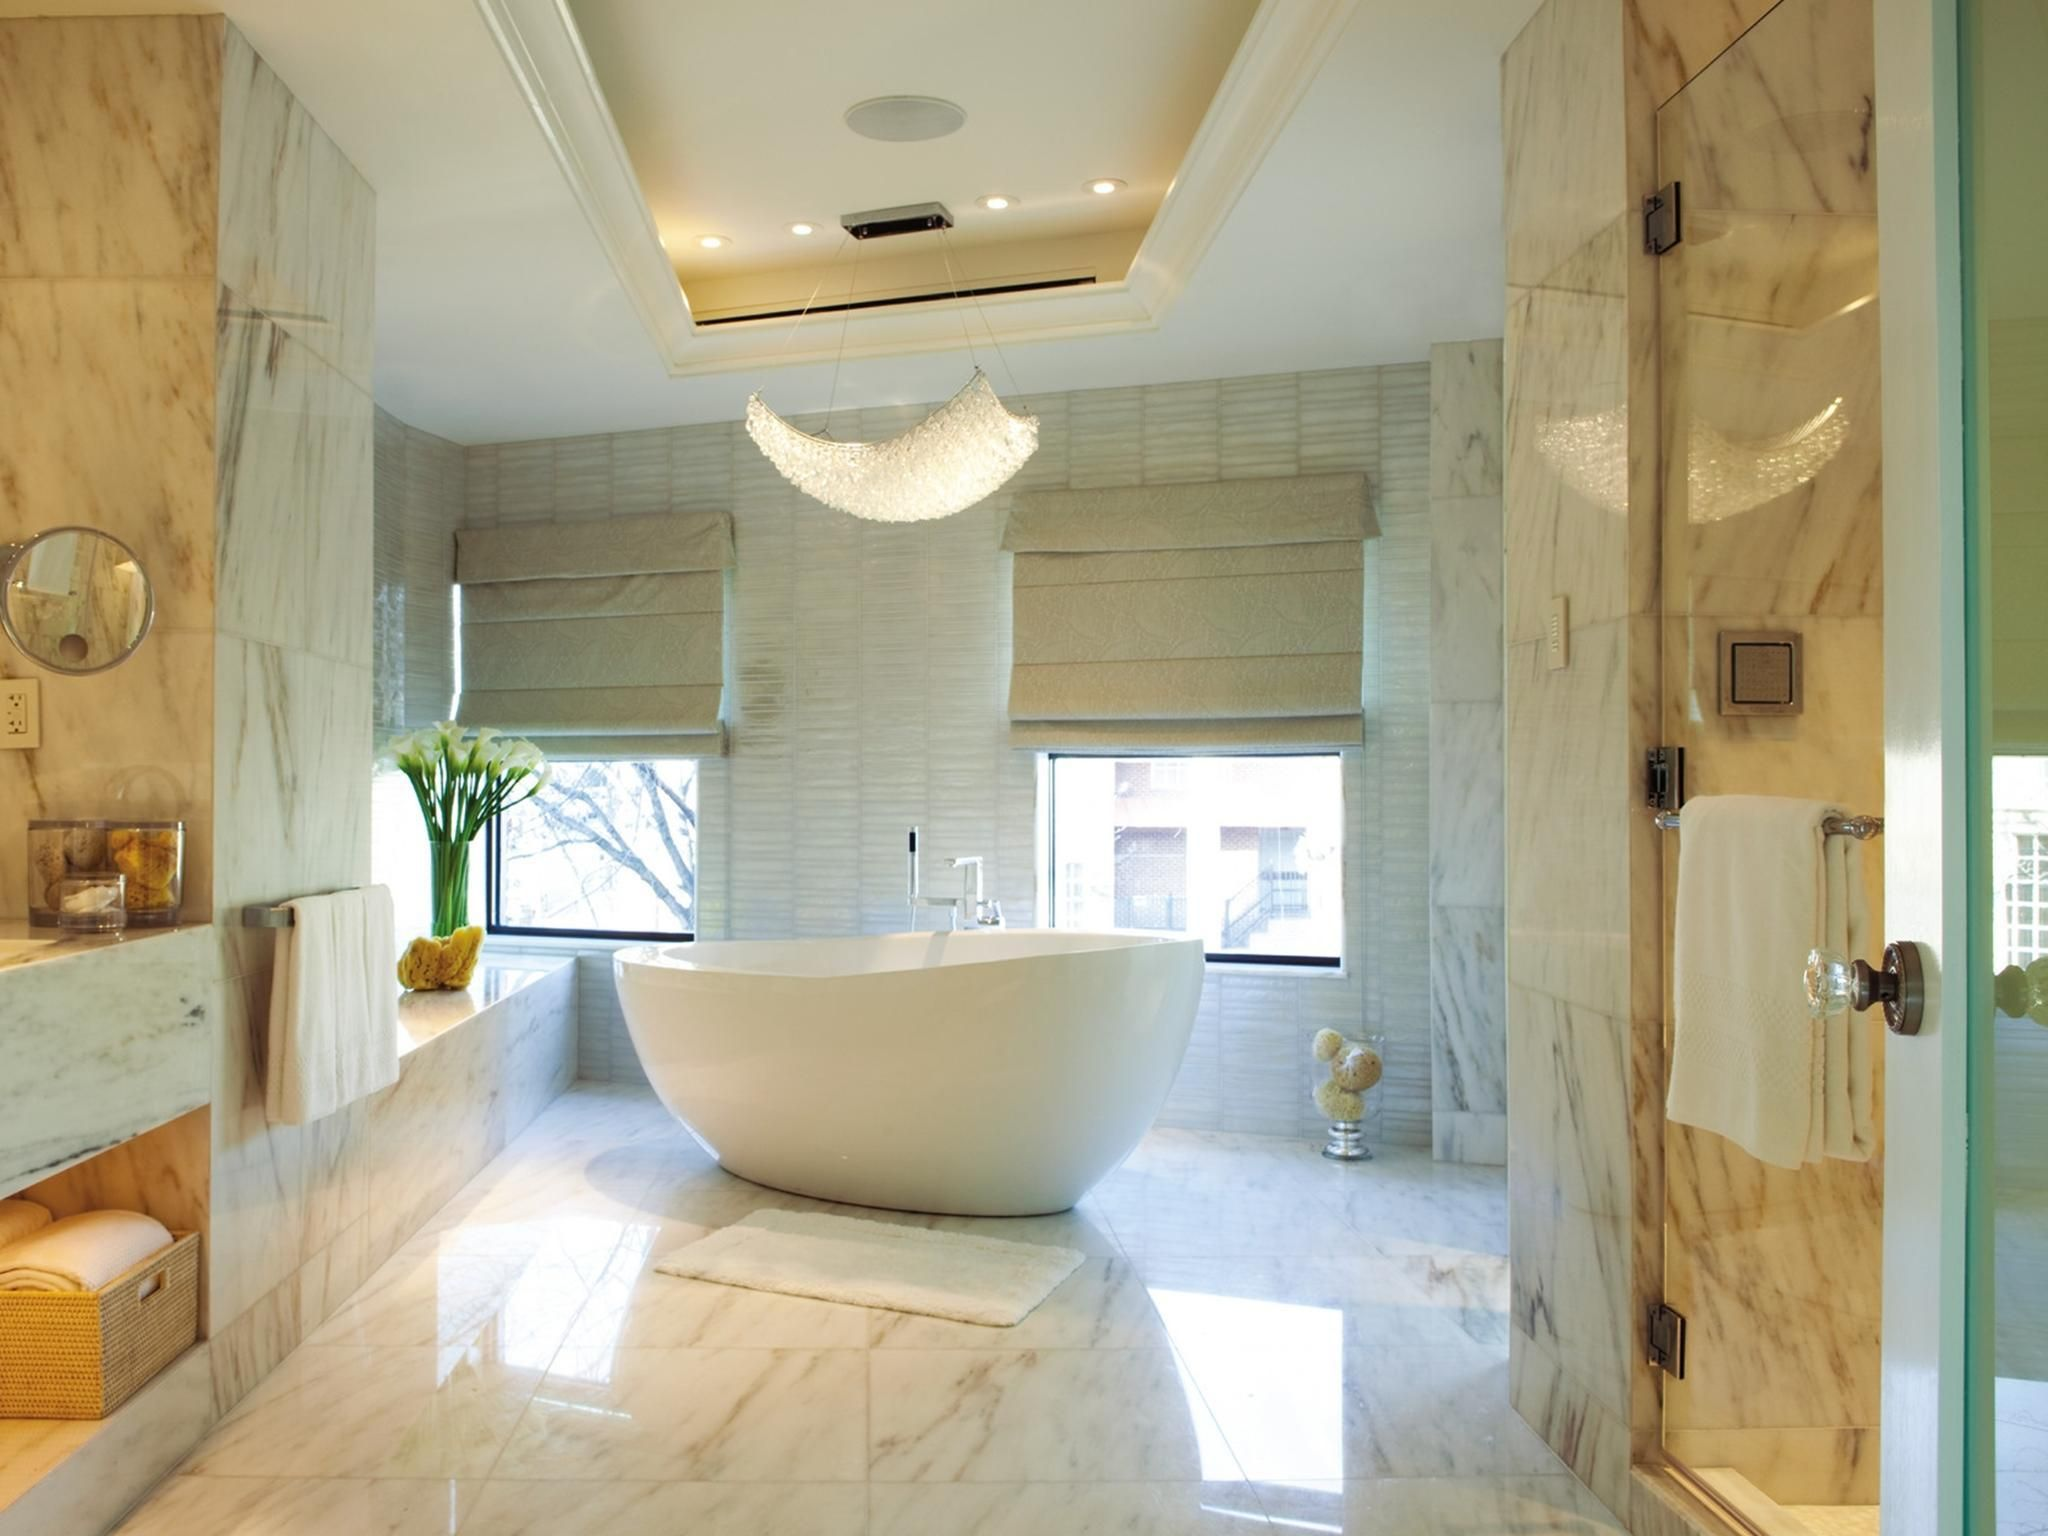 4Bathroom Remodel Upscale  Interiors  Pinterest  Interiors Extraordinary Spa Bathroom Remodel Decorating Inspiration